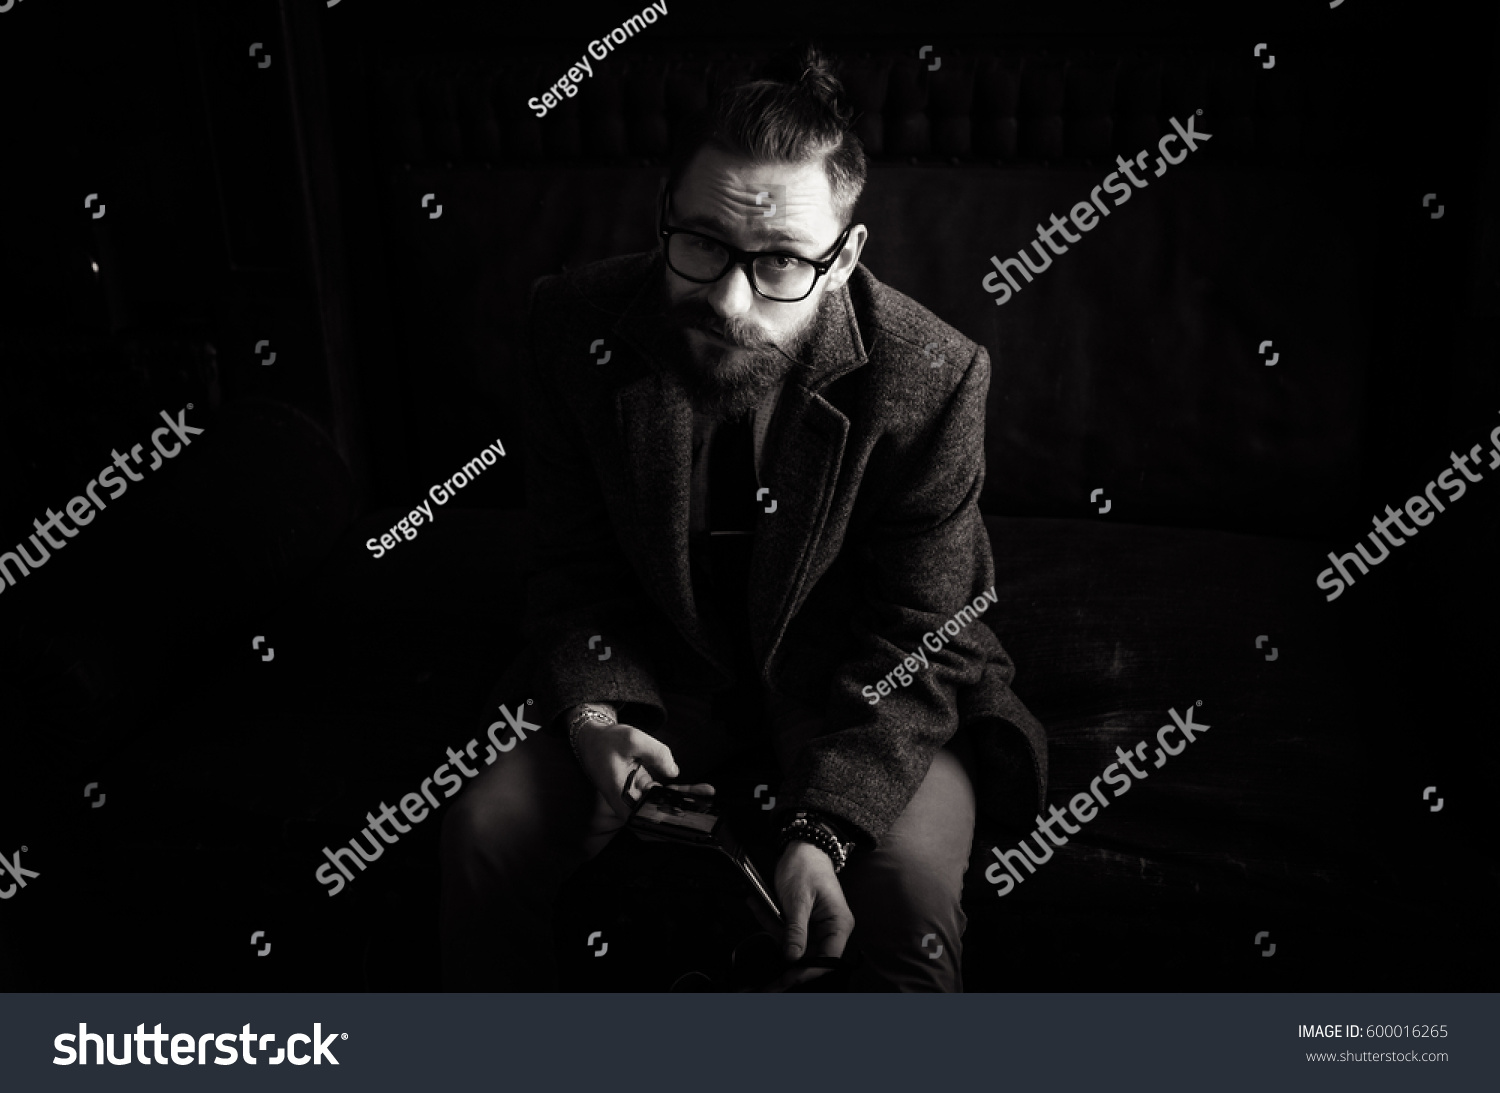 Black and white Portrait of handsome adult man sending a text message,business  man reading